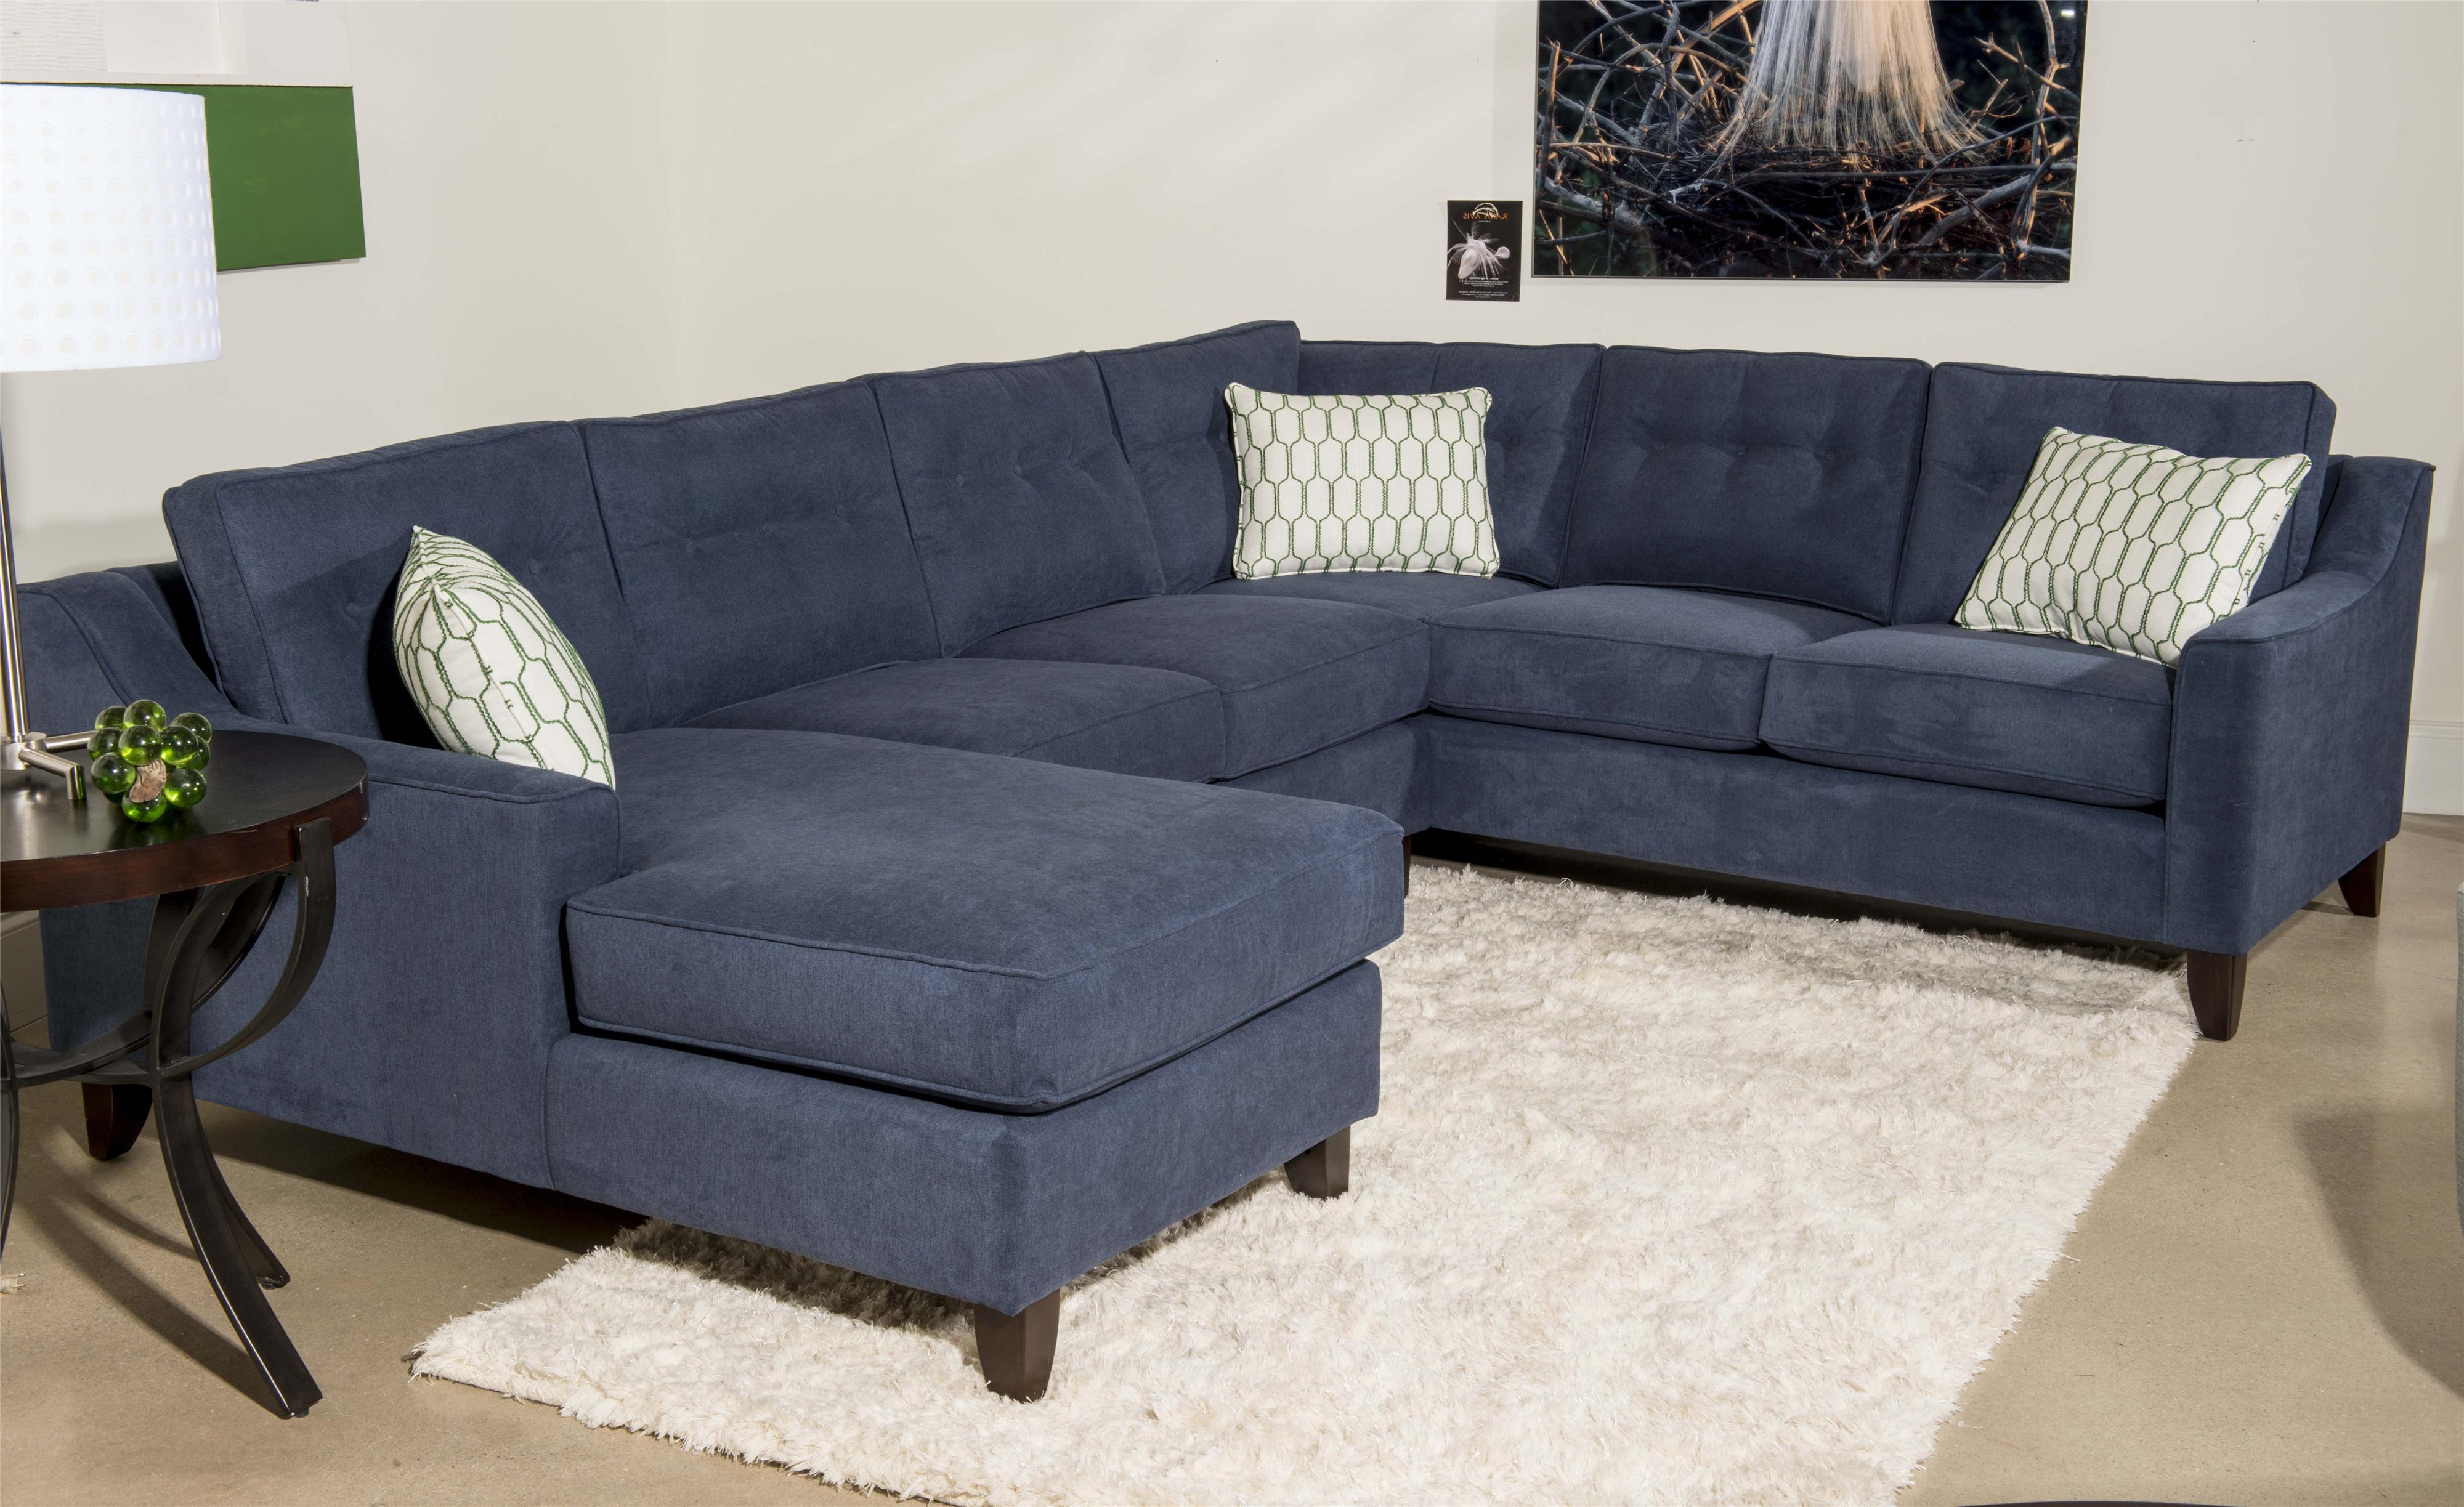 Klaussner Audrina Contermporary 3 Piece Sectional Sofa - Item Number: K31600L CHASE+ALS+R CRNS